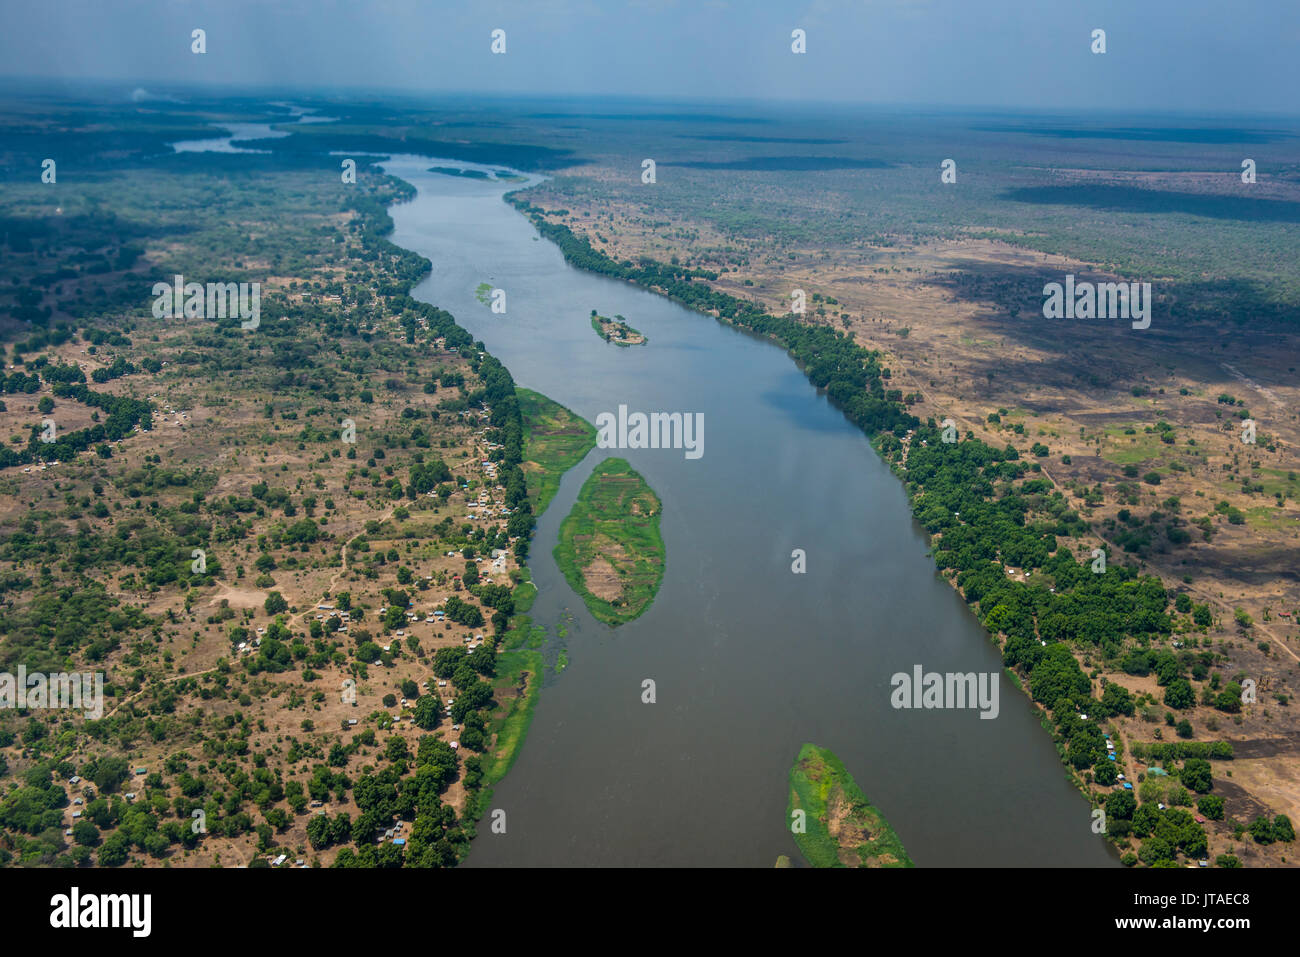 Aerial of the White Nile River, Juba, South Sudan, Africa - Stock Image